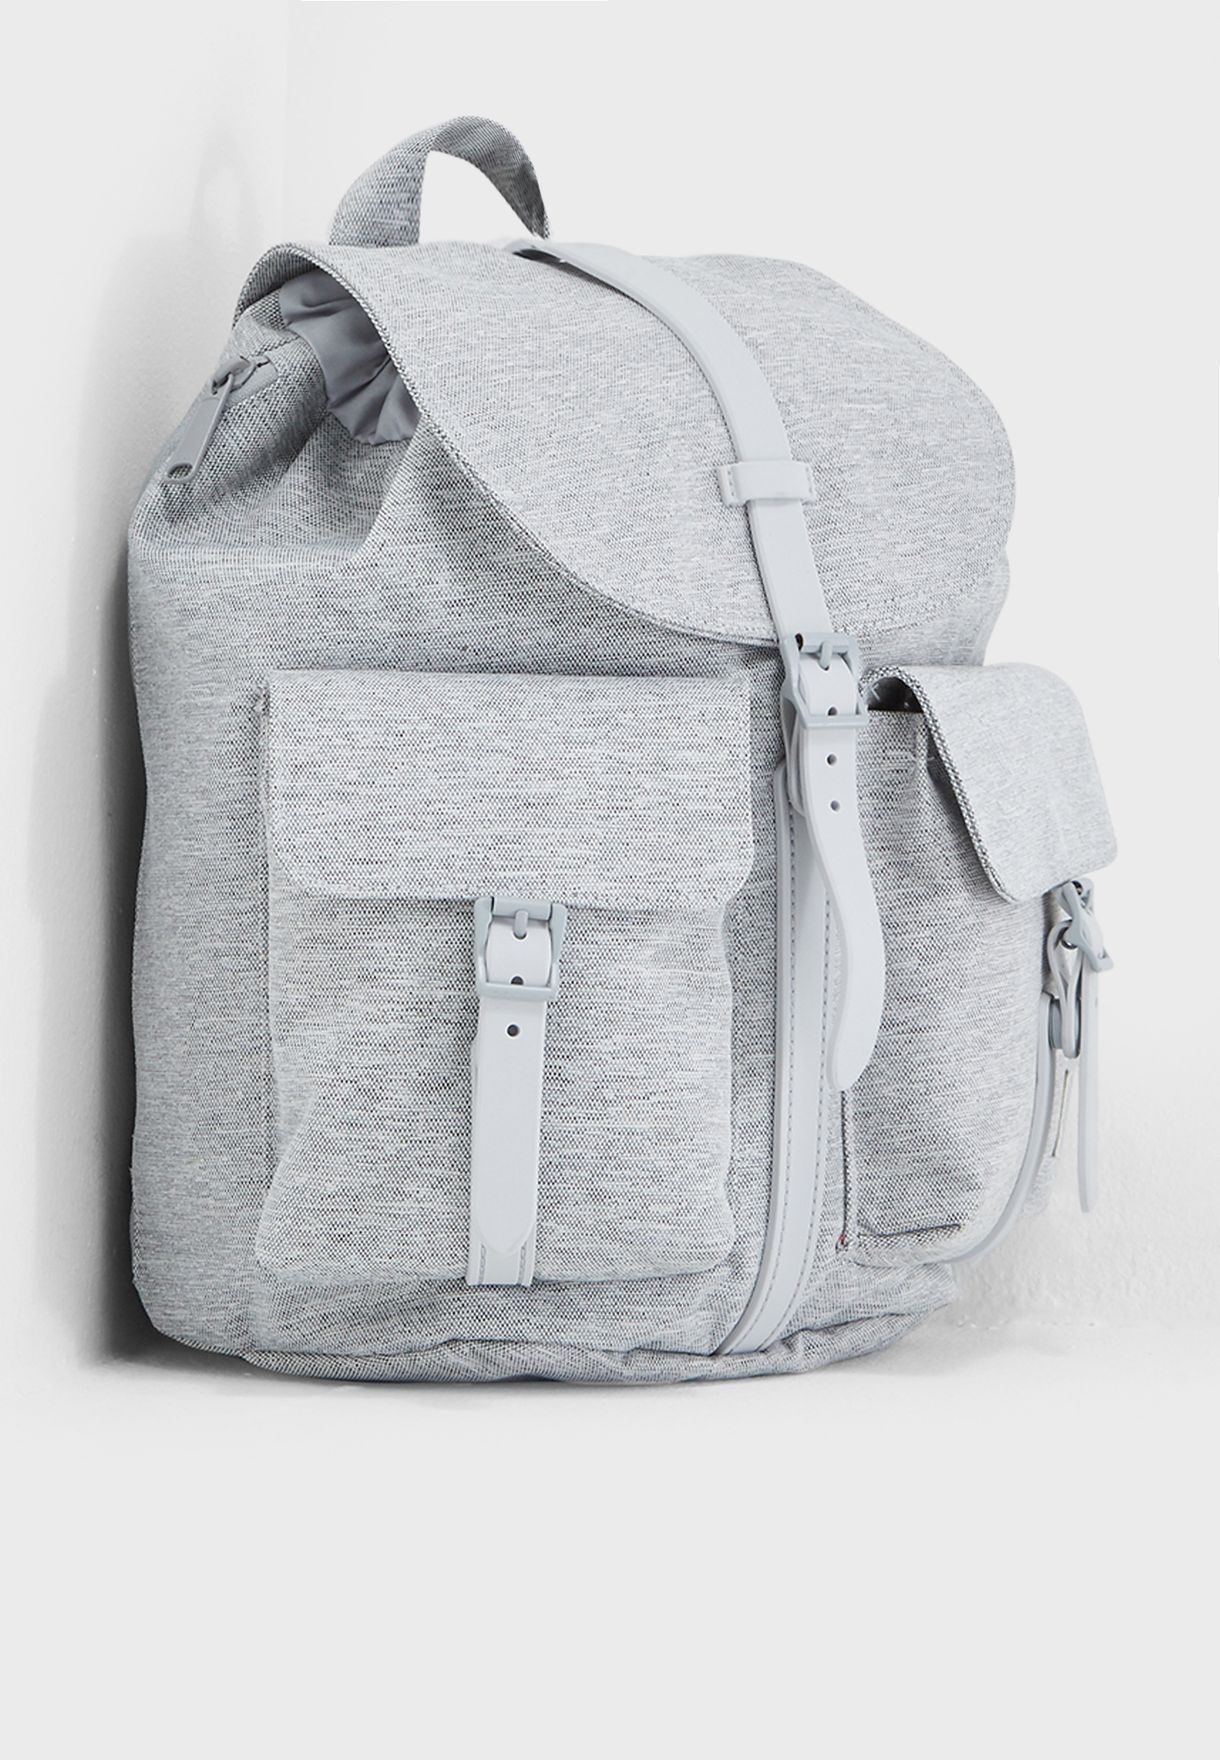 950a3192b40d Shop Herschel grey Extra Small Dawson Backpack 10301-01866-OS for Women in  Oman - HE829AC73IVY